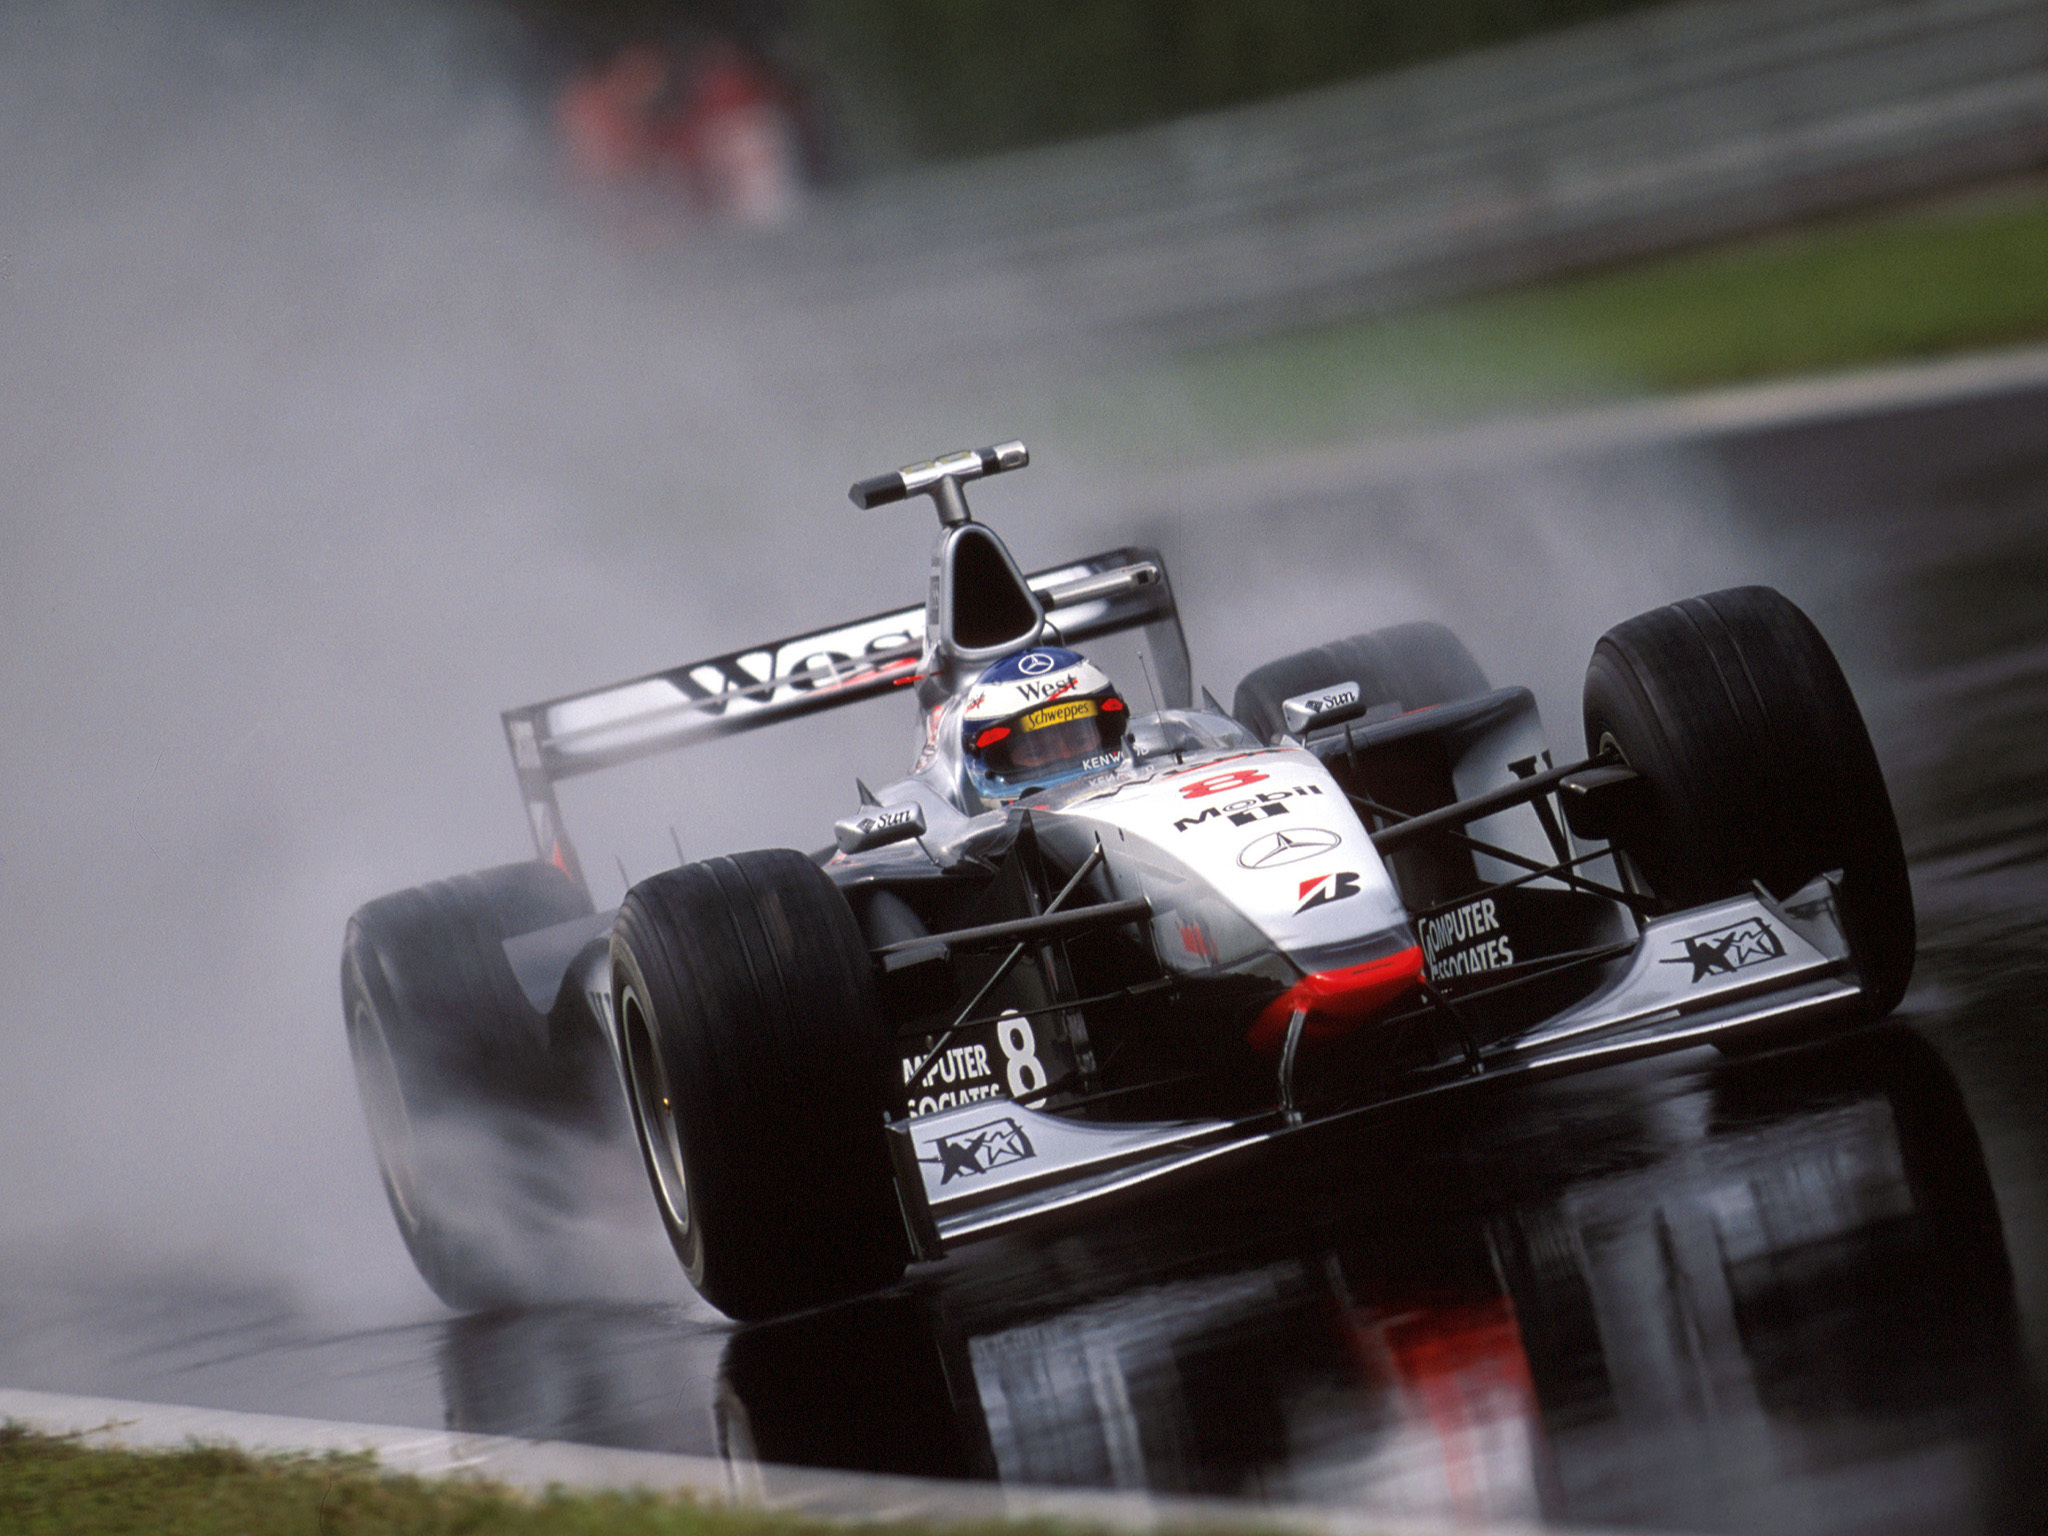 F1 Wallpapers High Resolution Download Inspiring Home Room